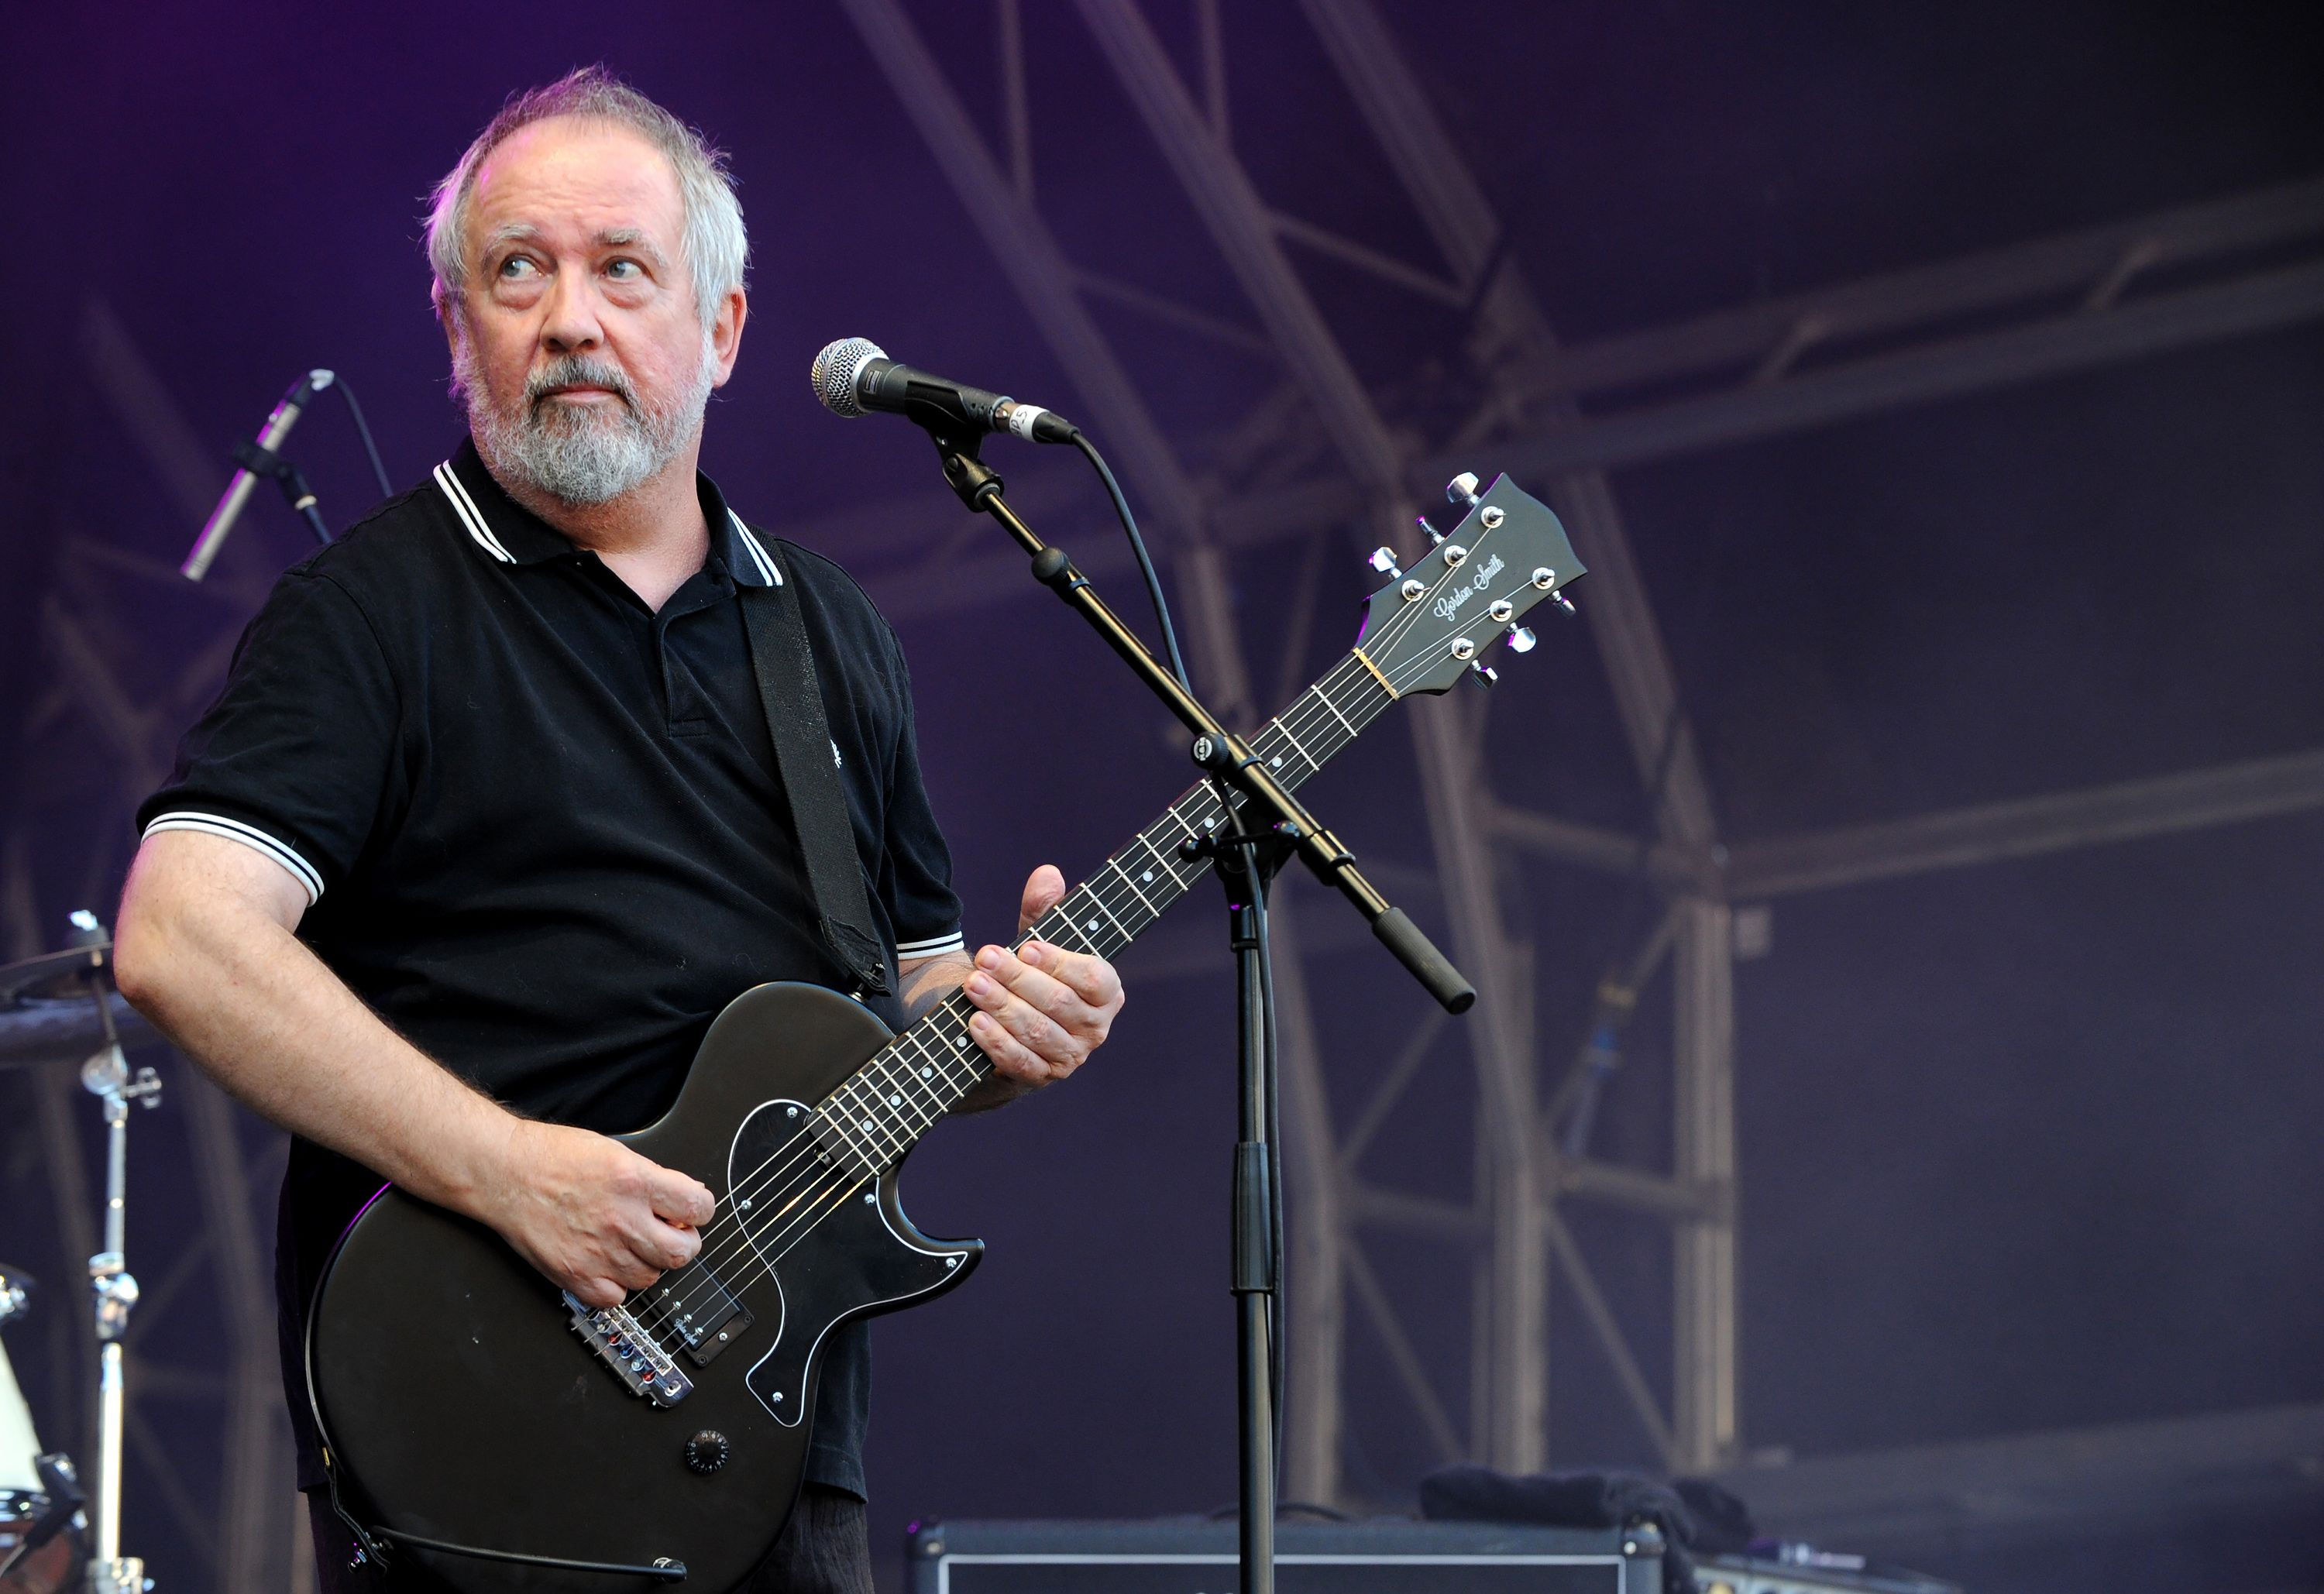 Pete Shelley of Buzzcocks performs, Sounds of the City, July 2018